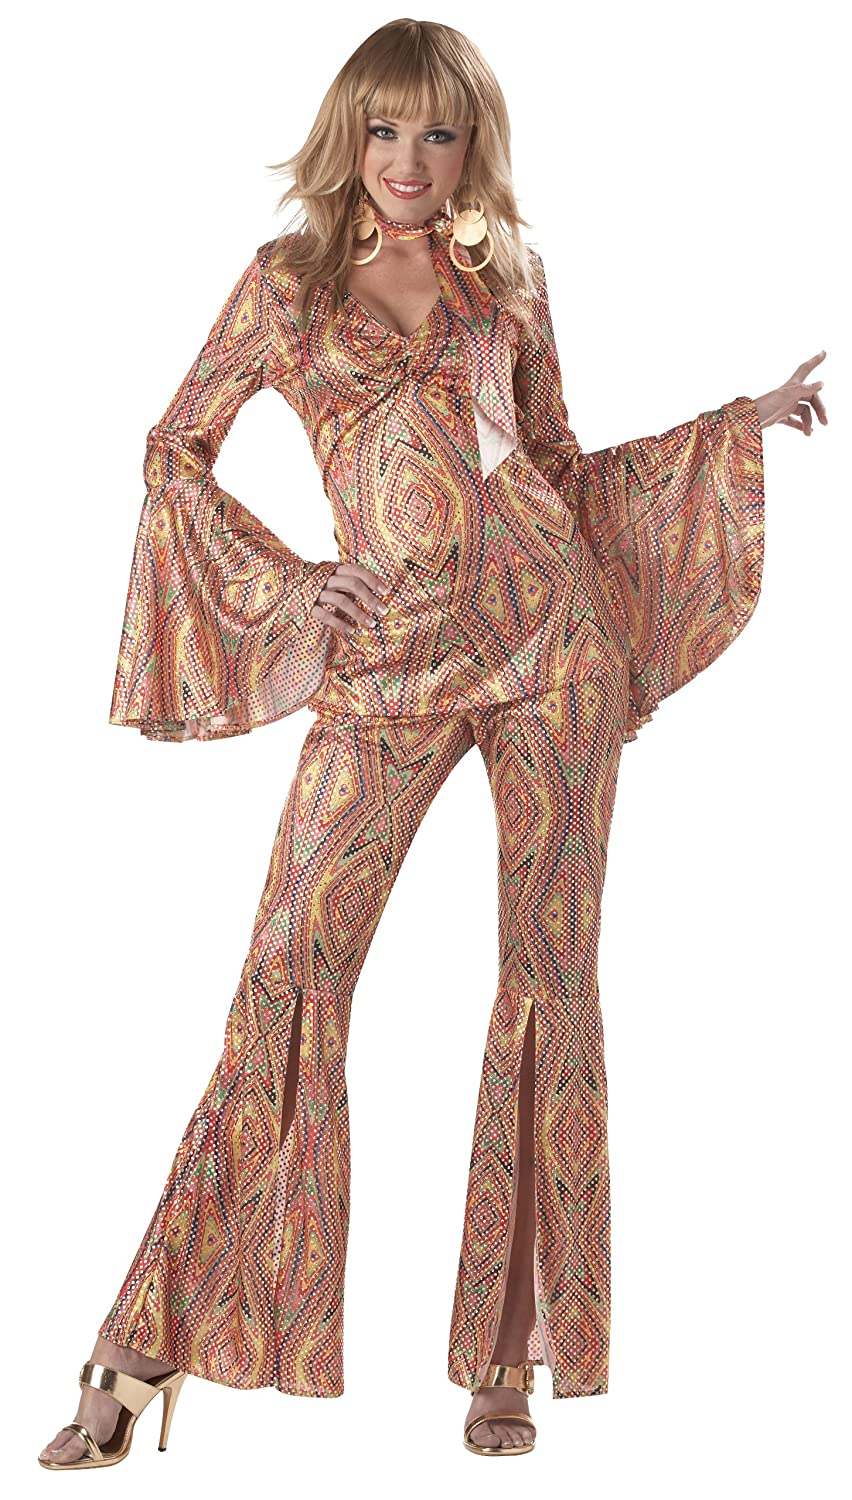 Hippie Costumes, Hippie Outfits California Costumes Womens Discolicious Costume $30.27 AT vintagedancer.com